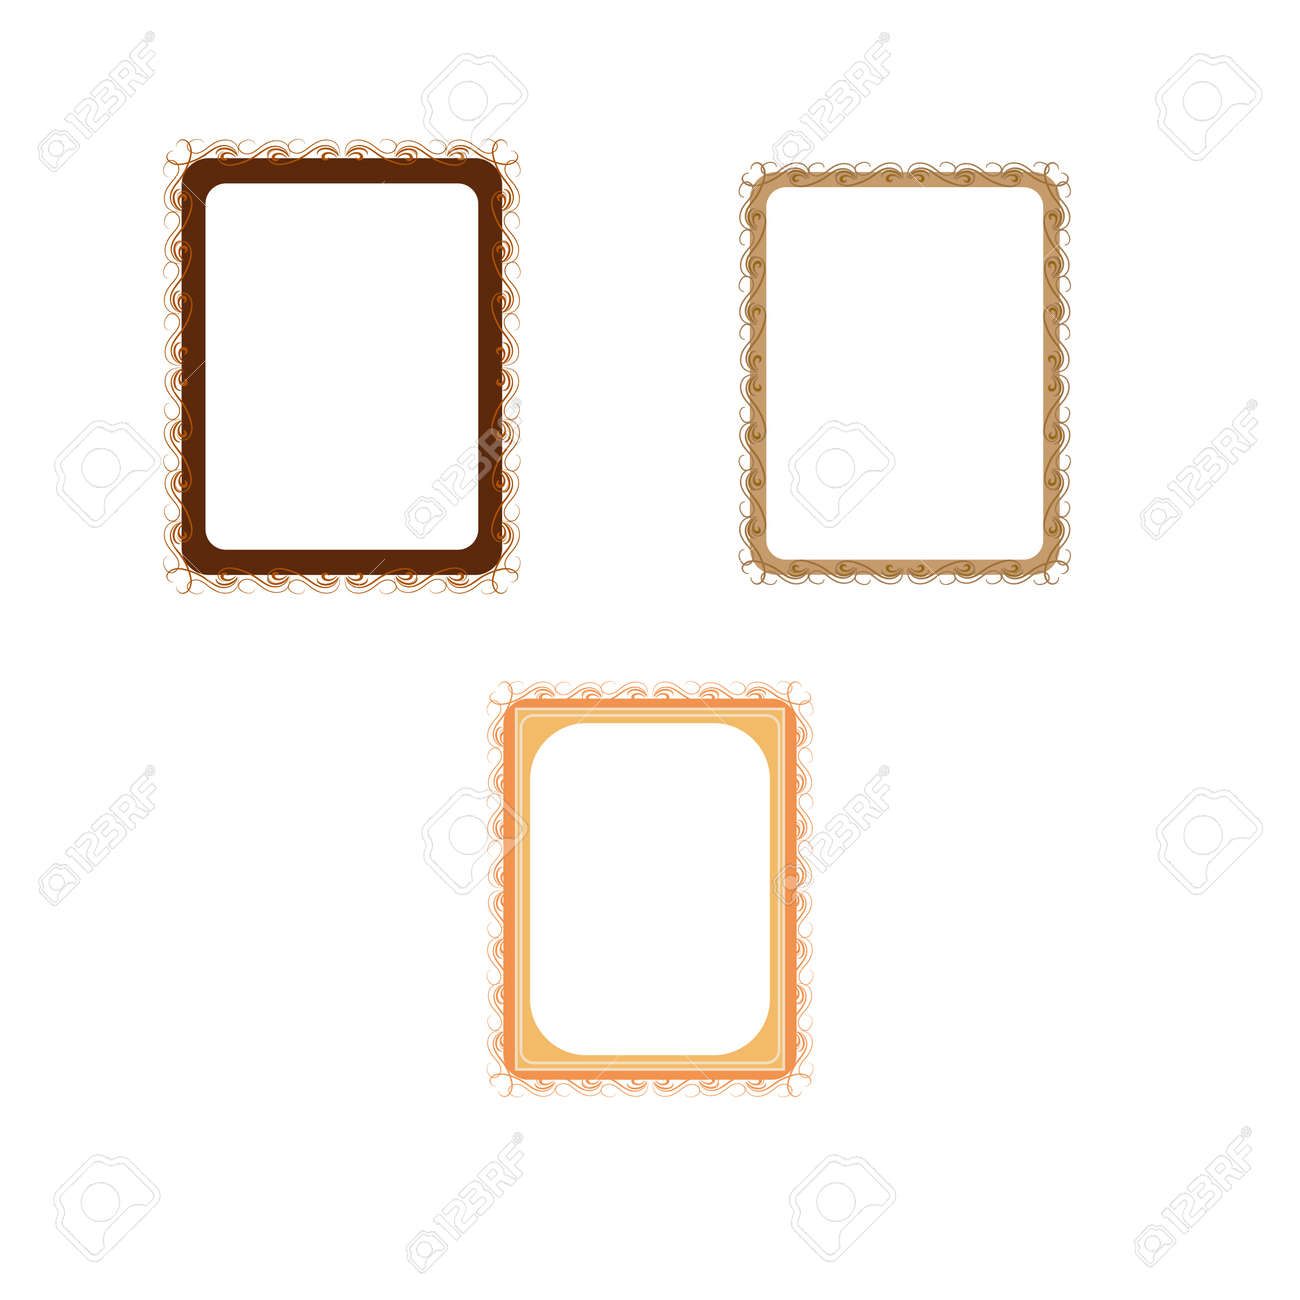 Gold frames with wavy line for photo, blank prints - 159702356